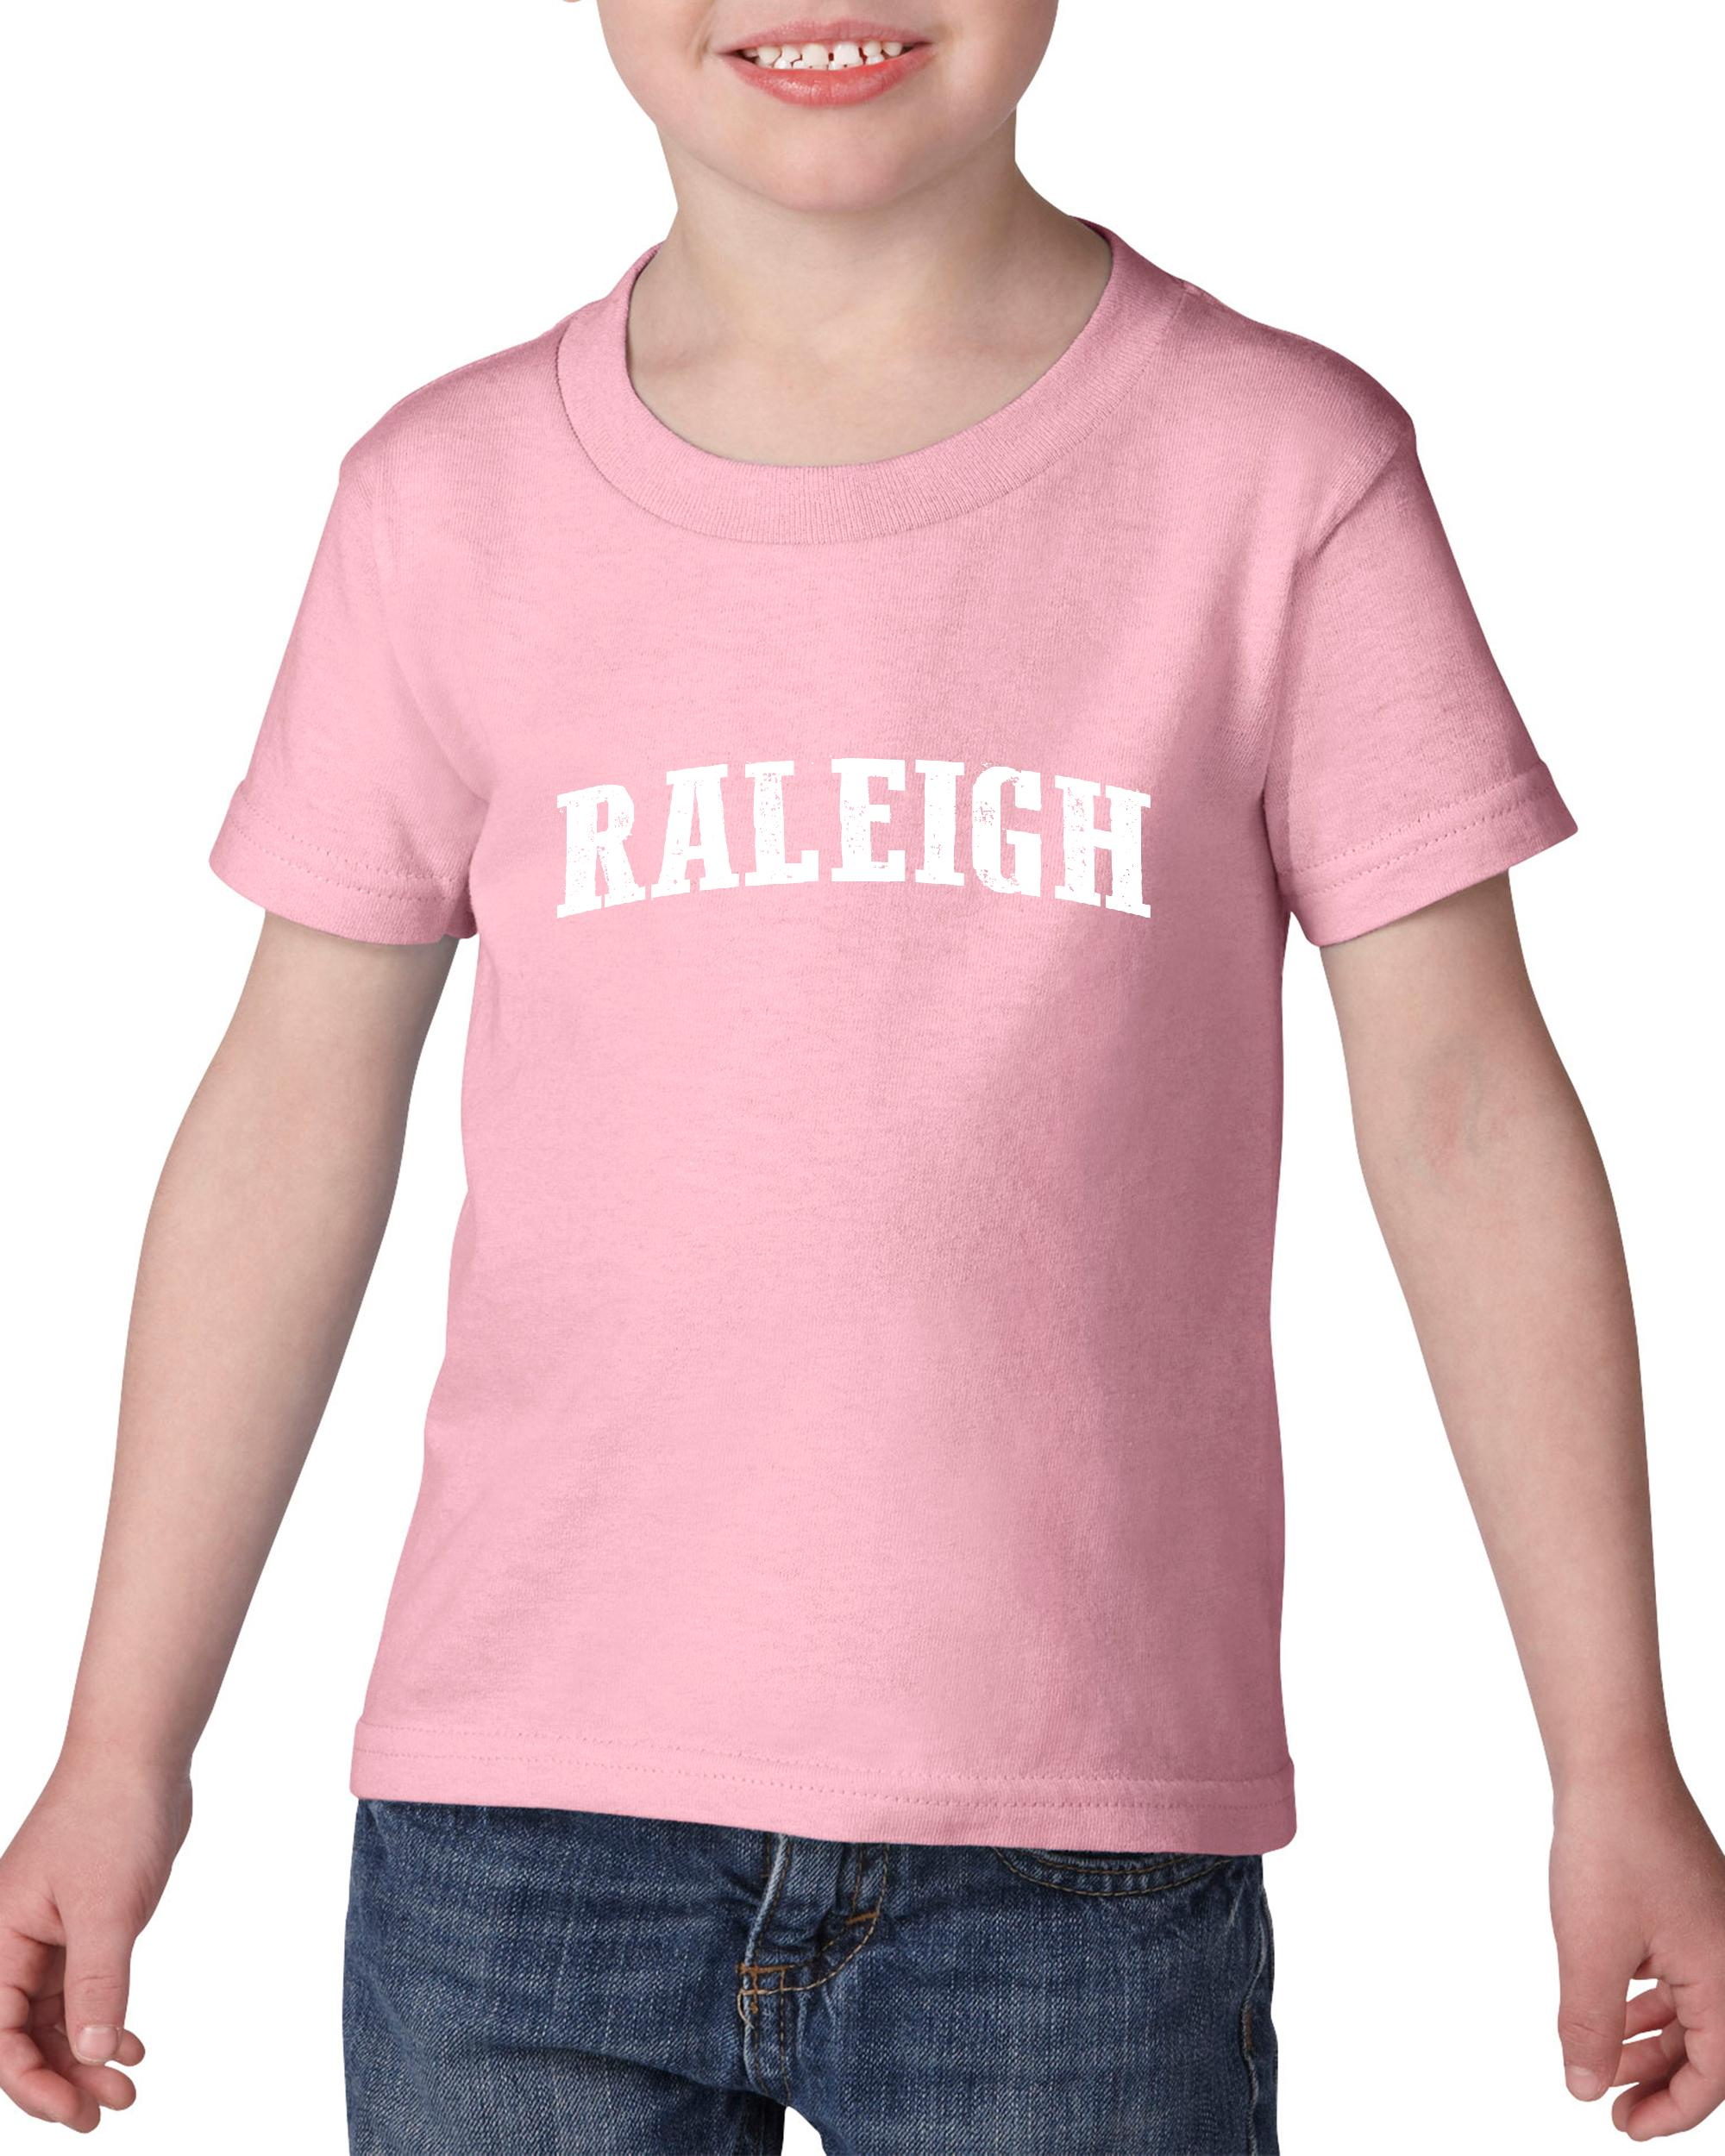 Artix Raleigh NC North Carolina Flag Charlotte Map 49ers Home of University of NC UNC Heavy Cotton Toddler Kids T-Shirt Tee Clothing